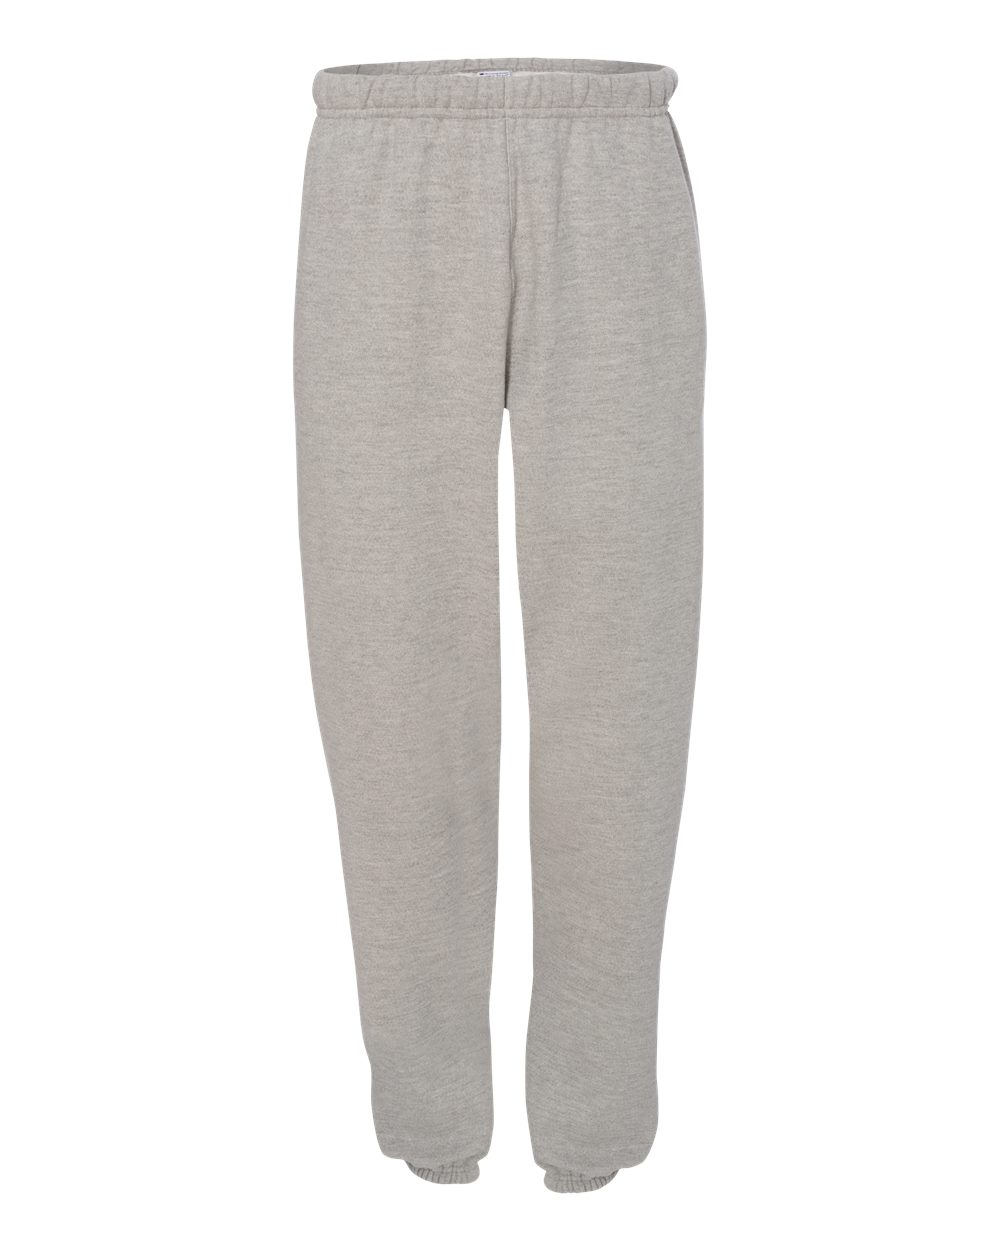 Champion-Mens-Reverse-Weave-Sweatpants-with-Pockets-RW10-up-to-3XL thumbnail 9